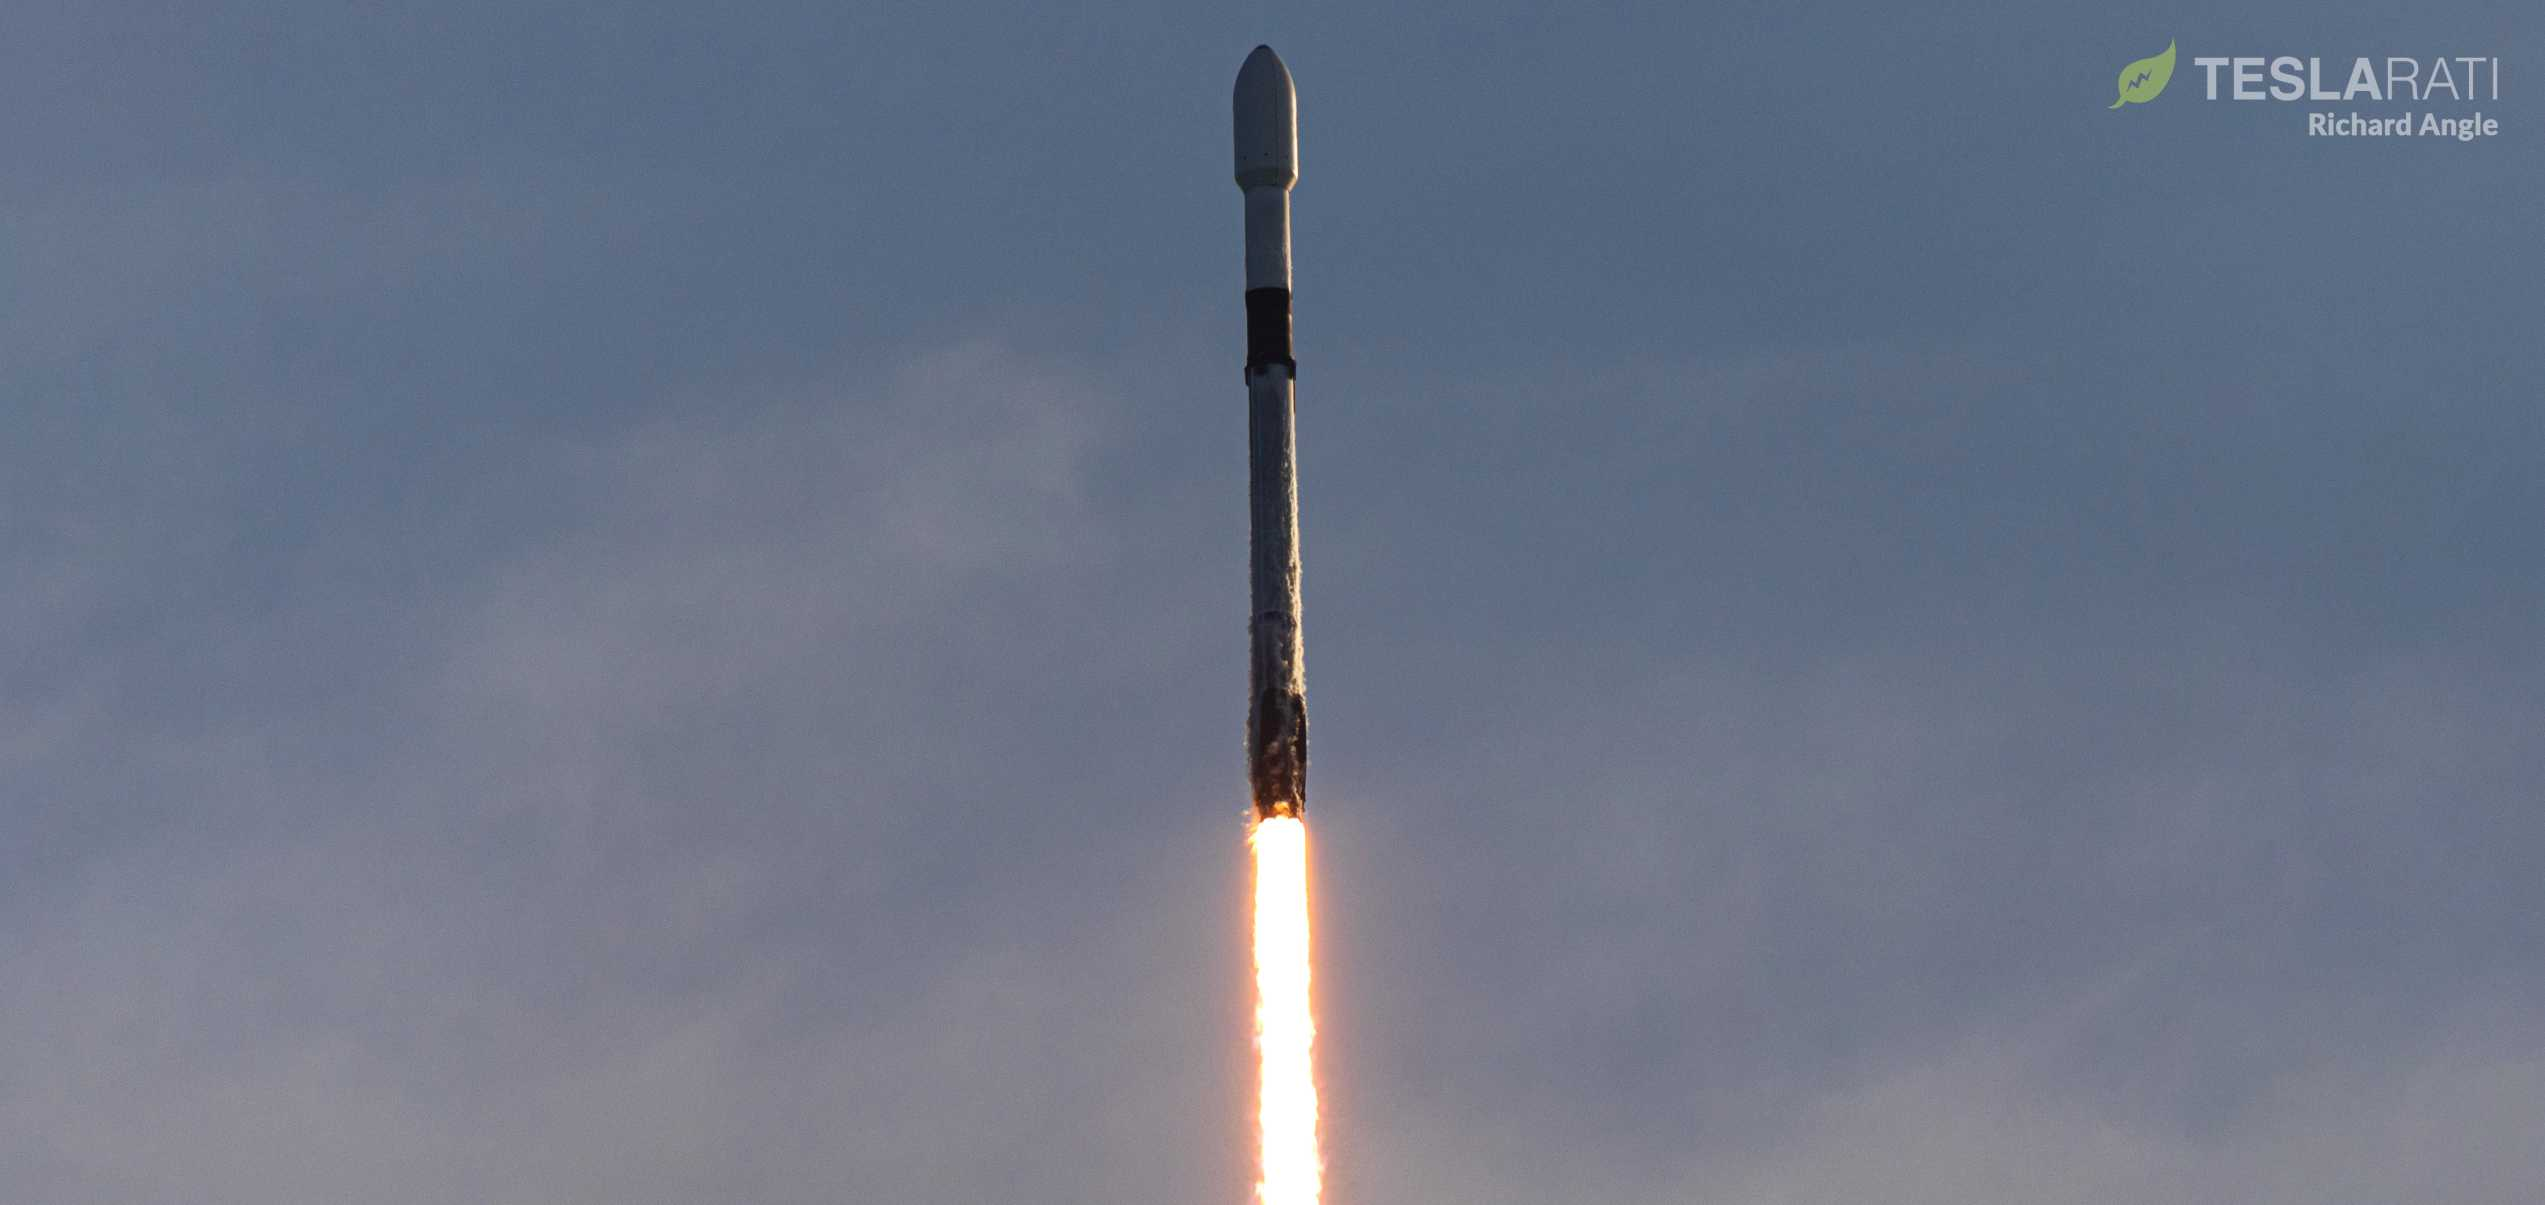 Starlink V1 L5 F9 B1048 39A 031820 (Richard Angle) launch (1) crop 2 (c)